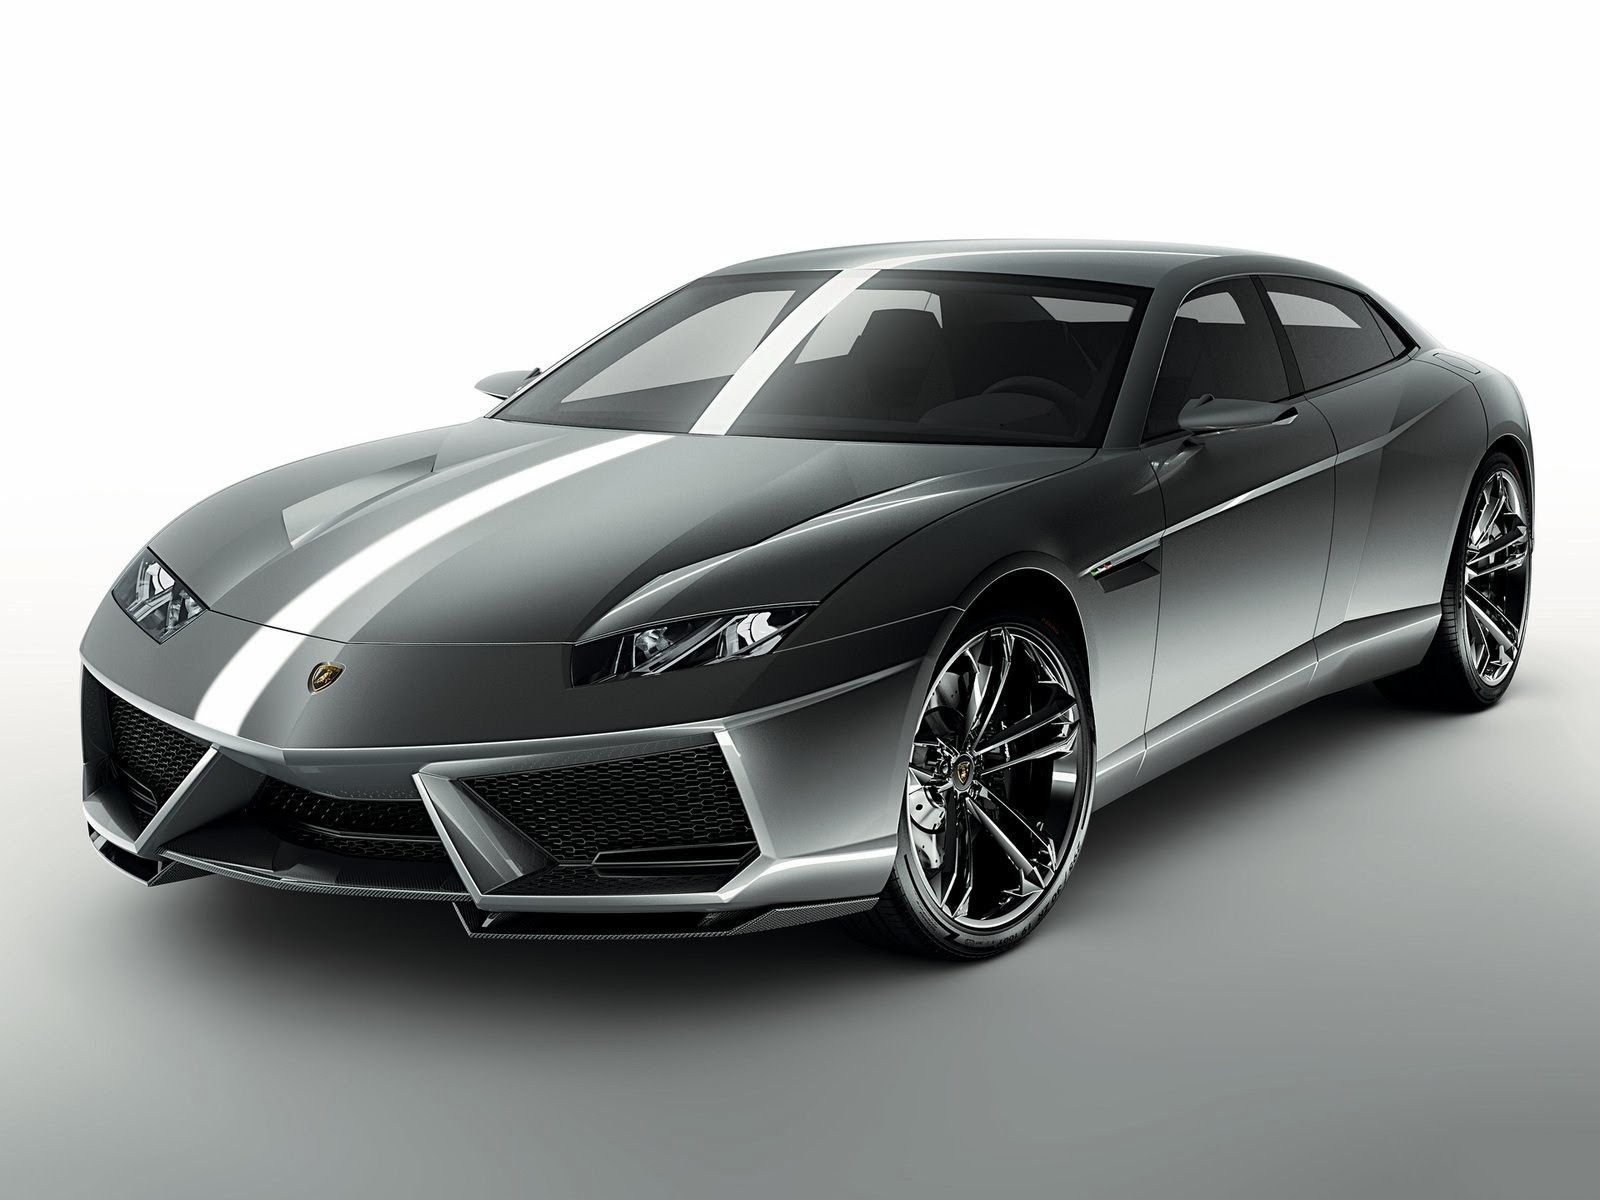 Lamborghini Estoque Concept Wide For Desktop - lamborghini estoque concept wide wallpapers